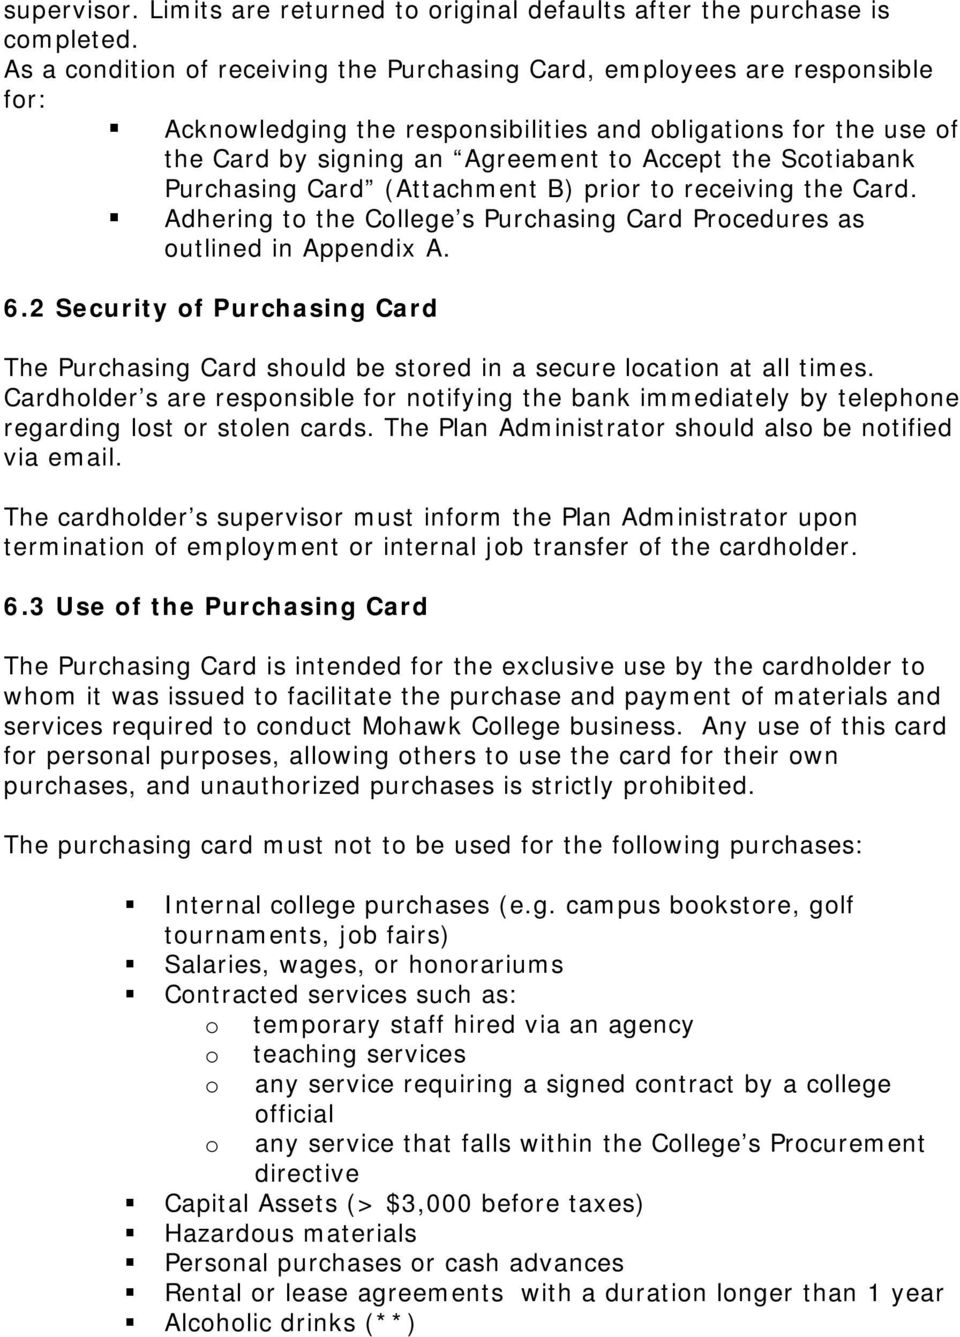 Scotiabank Purchasing Card (Attachment B) prior to receiving the Card. Adhering to the College s Purchasing Card Procedures as outlined in Appendix A. 6.